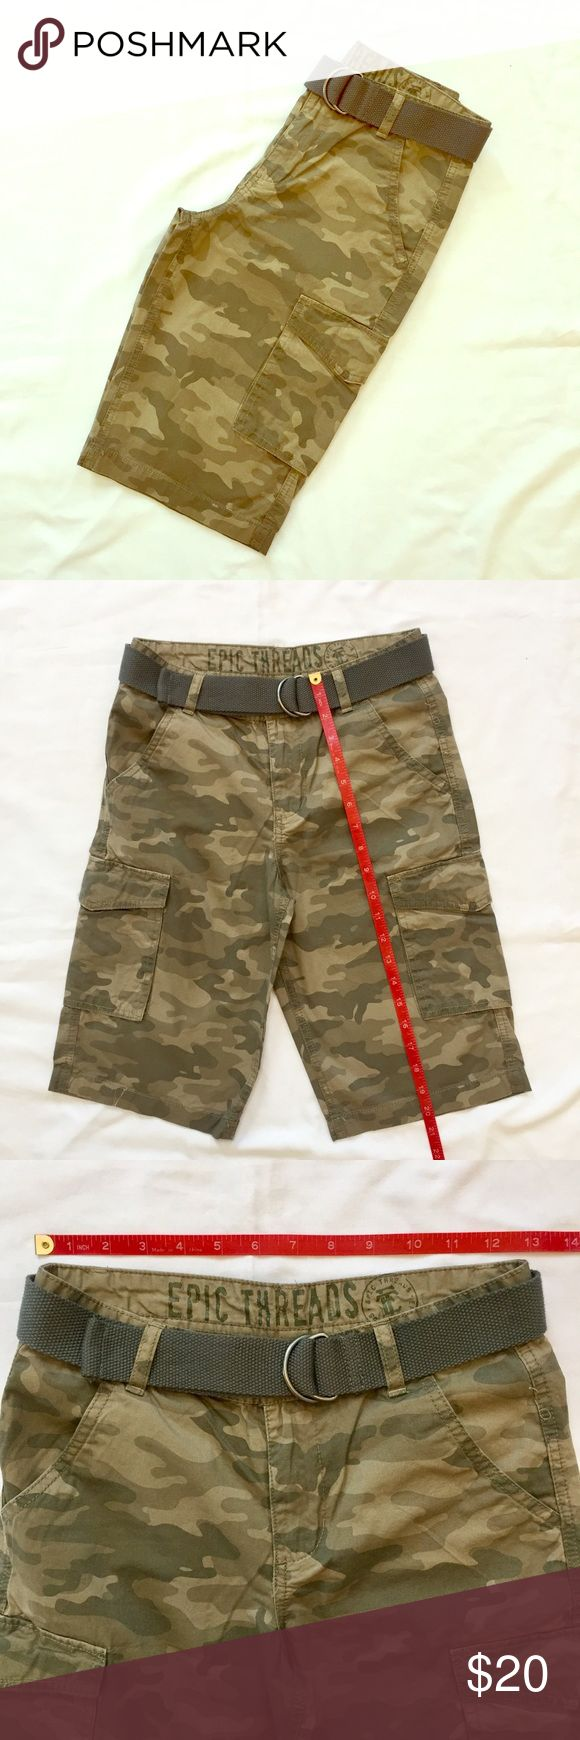 """👦NWOT BOYS CAMO CARGO SHORTS BELT POCKETS KIDS👦 NEW WITHOUT TAGS.  Boys camouflage """"camo"""" shorts with belt.  Size 10, see pictures for measurements.  Khaki, beige, army green.  No material tag.  Free of smoke and pets.  NCMCOLLECTIONS Epic Threads Bottoms Shorts"""